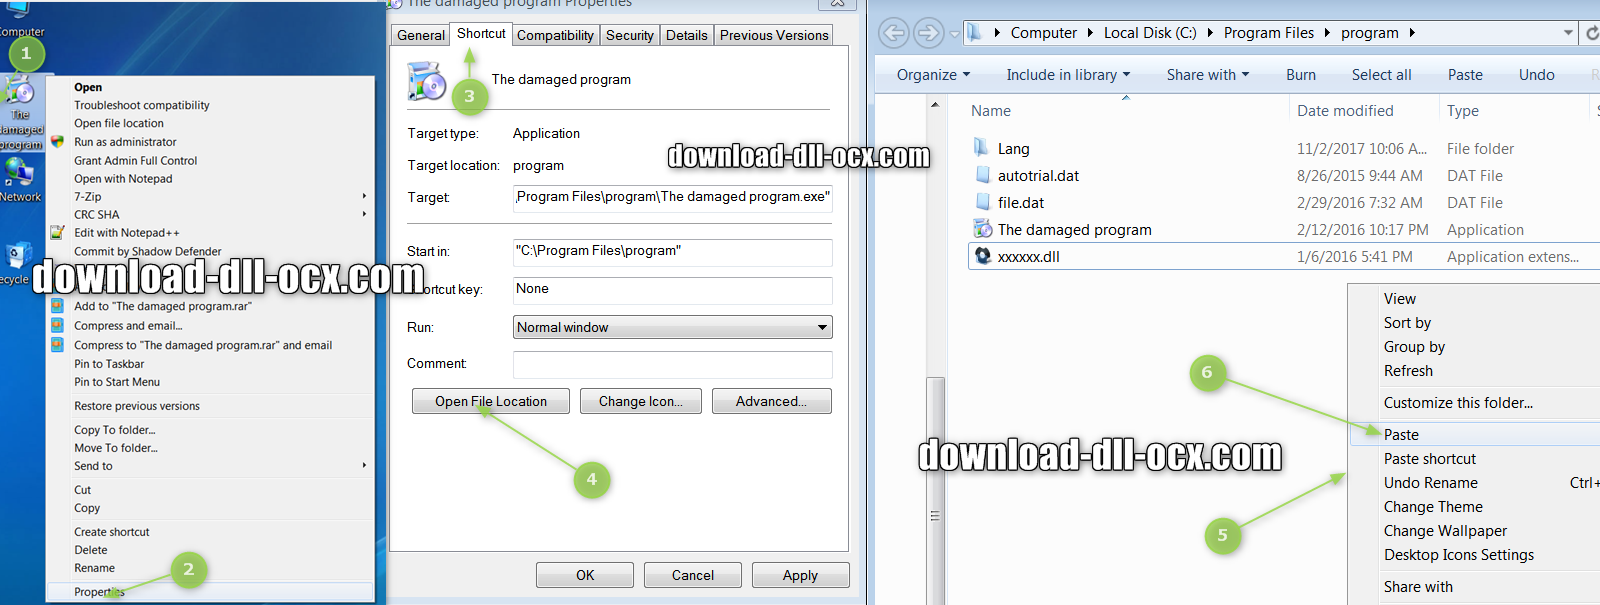 how to install Coachdm3.dll file? for fix missing